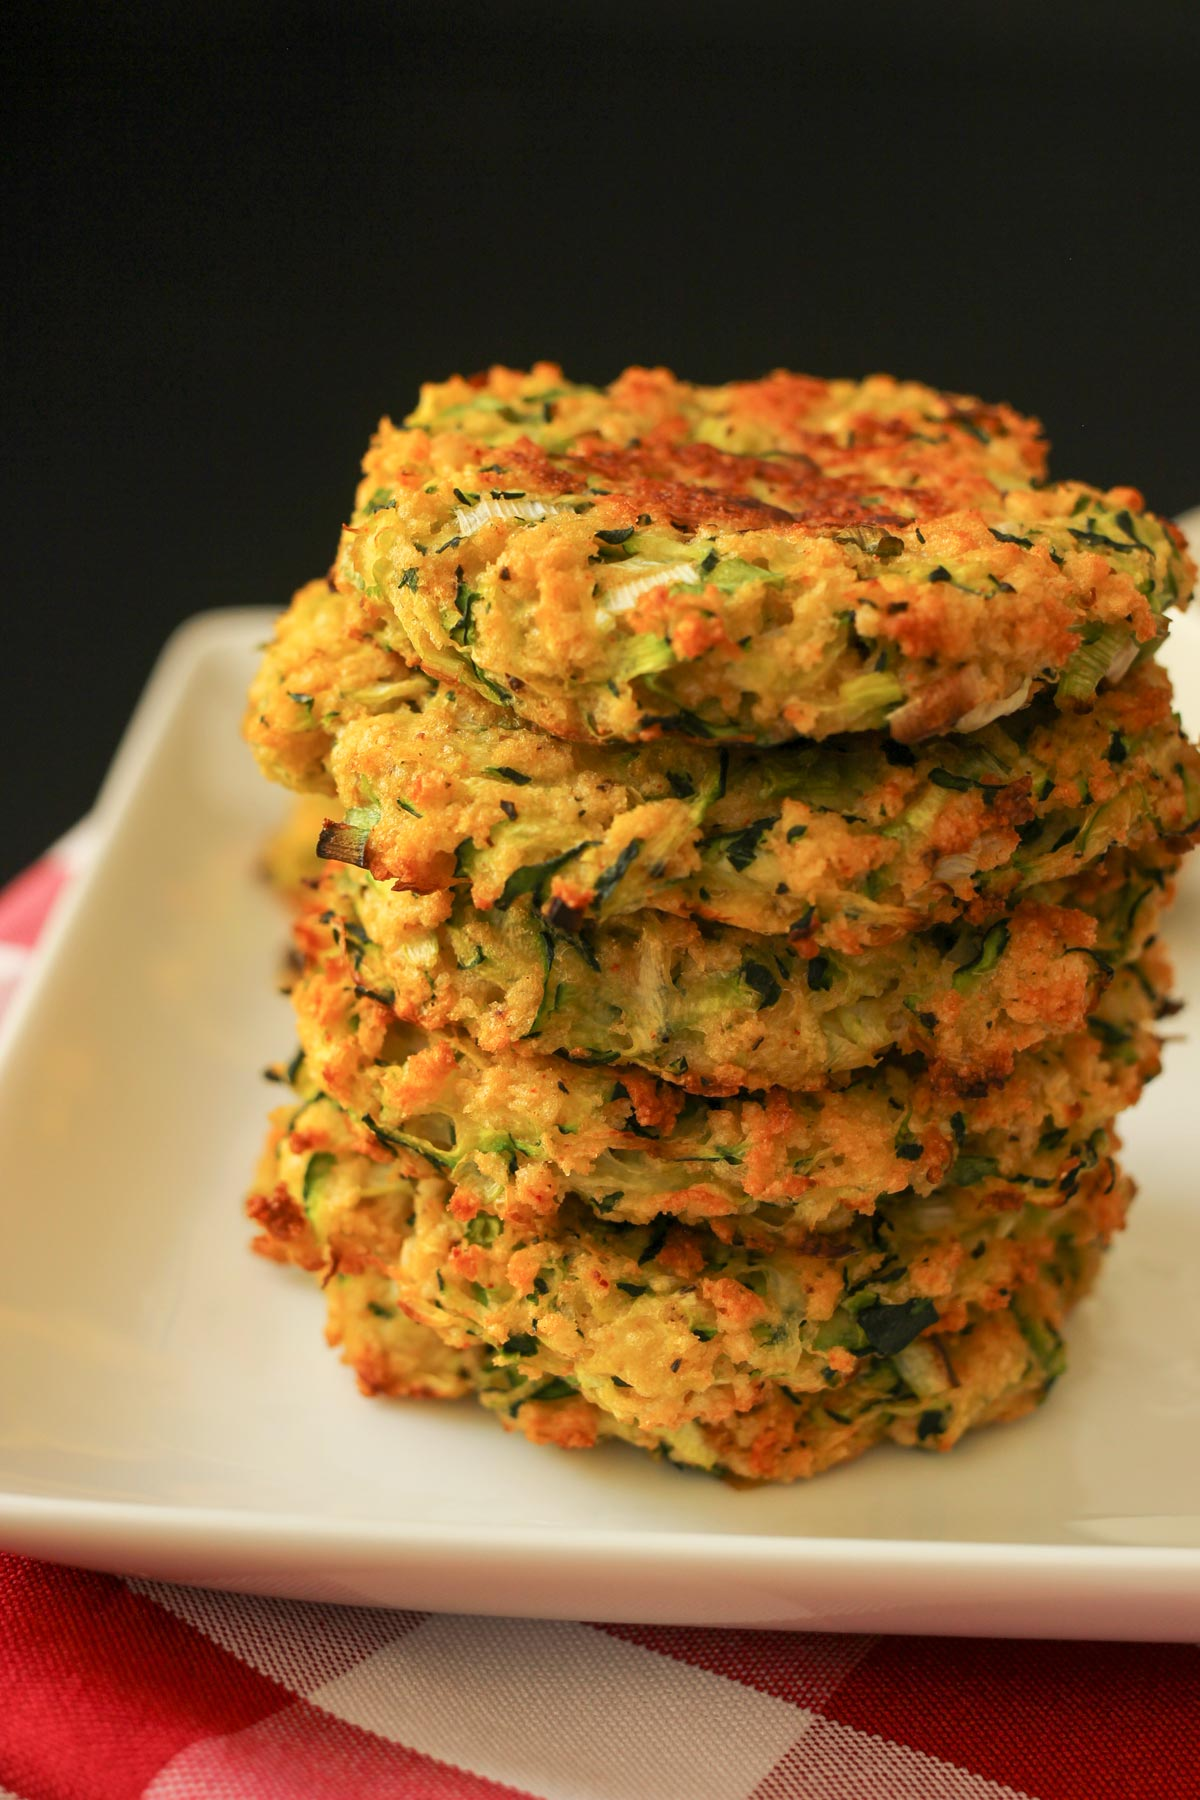 stack of baked zucchini fritters on a white square plate on red-checked napkin.